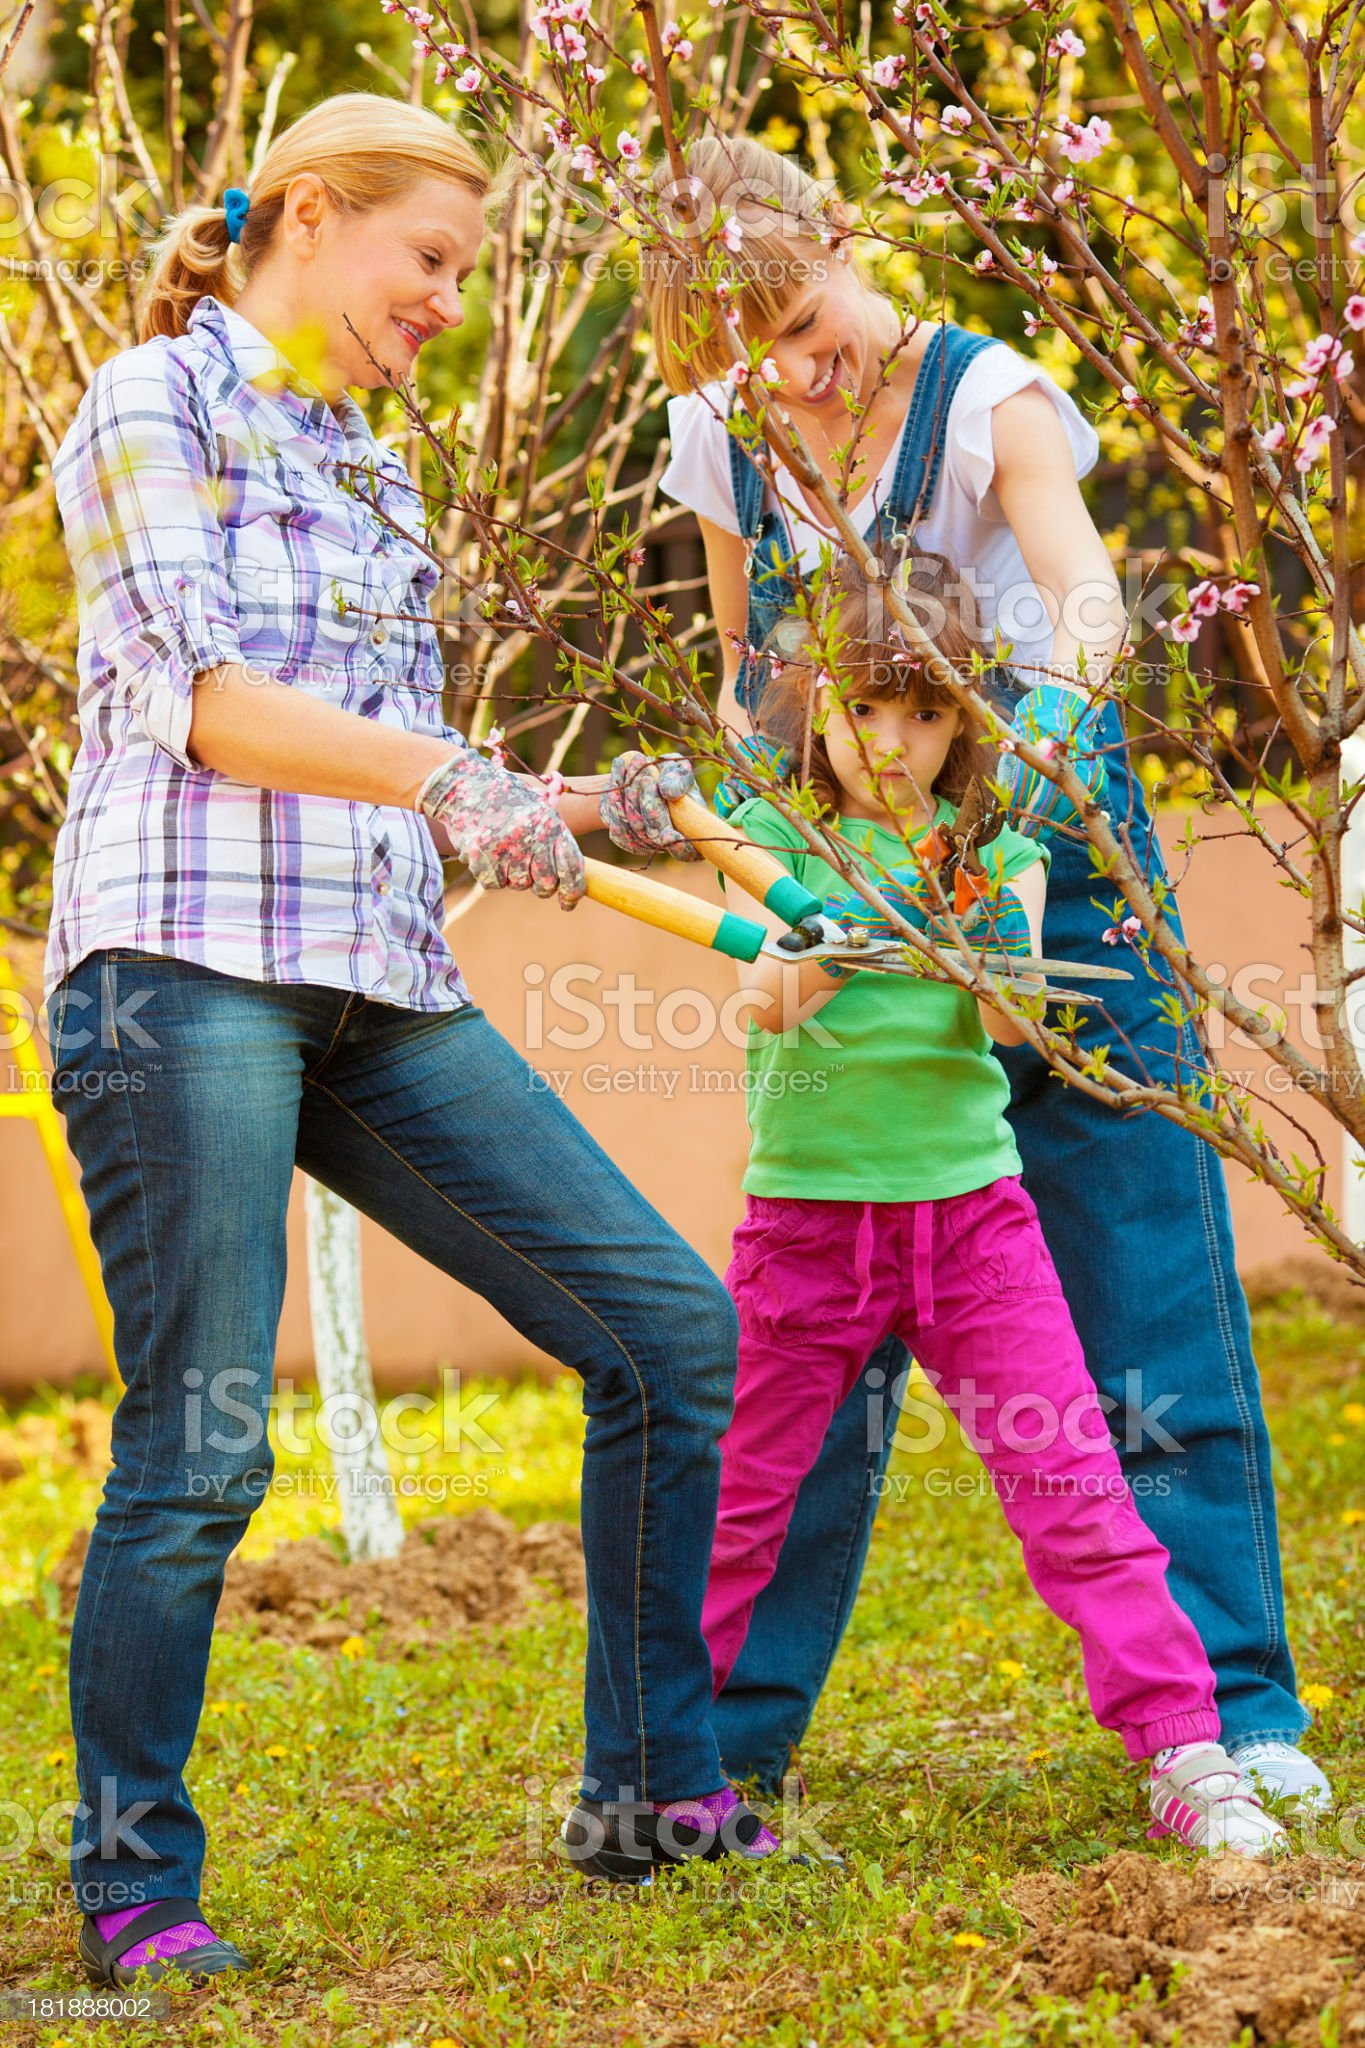 Family Working in Orchard. royalty-free stock photo